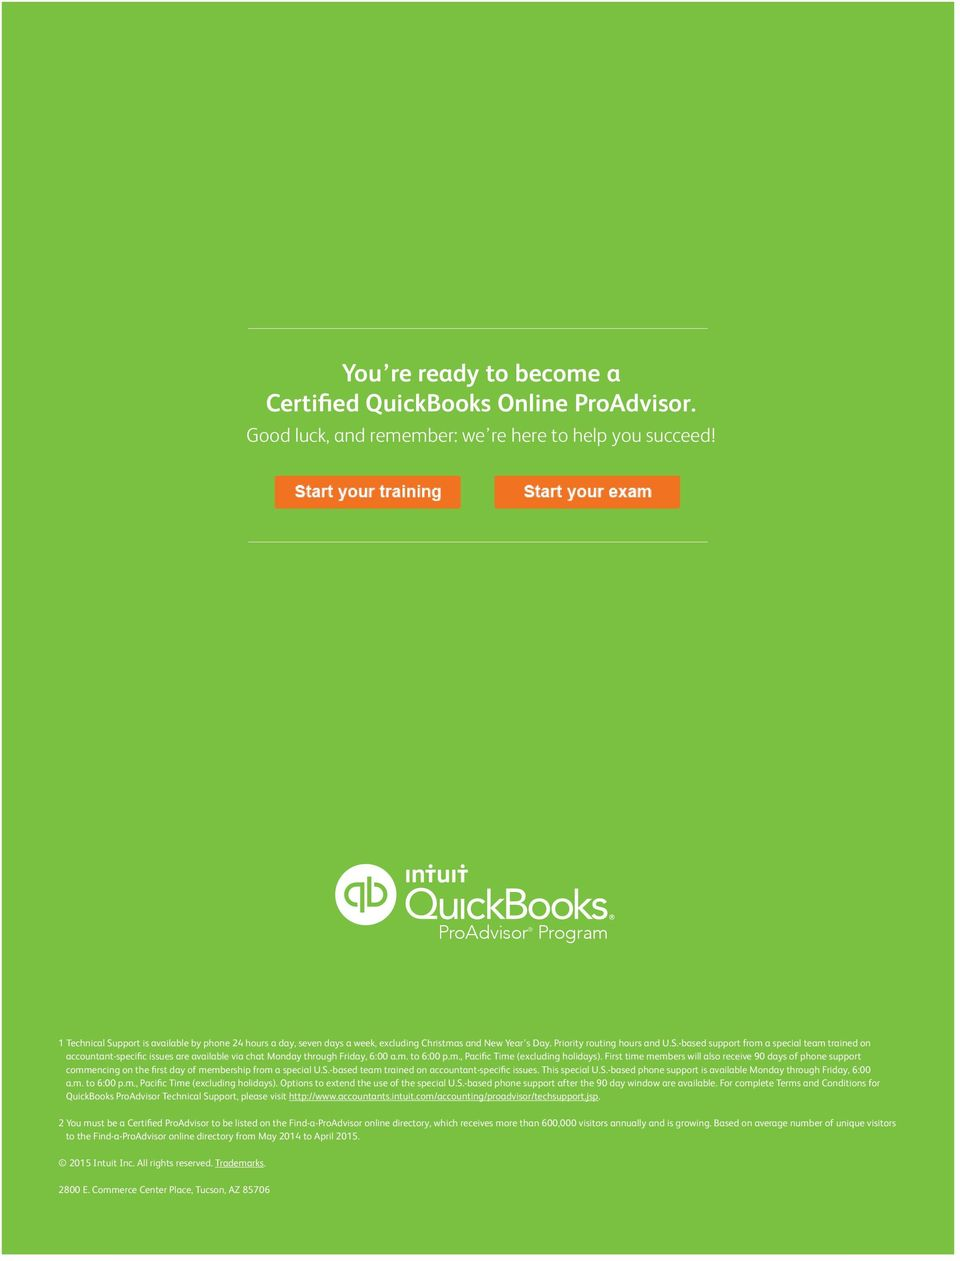 Acing the quickbooks online certification exam pdf m to 600 pm pacific time excluding holidays first thecheapjerseys Gallery